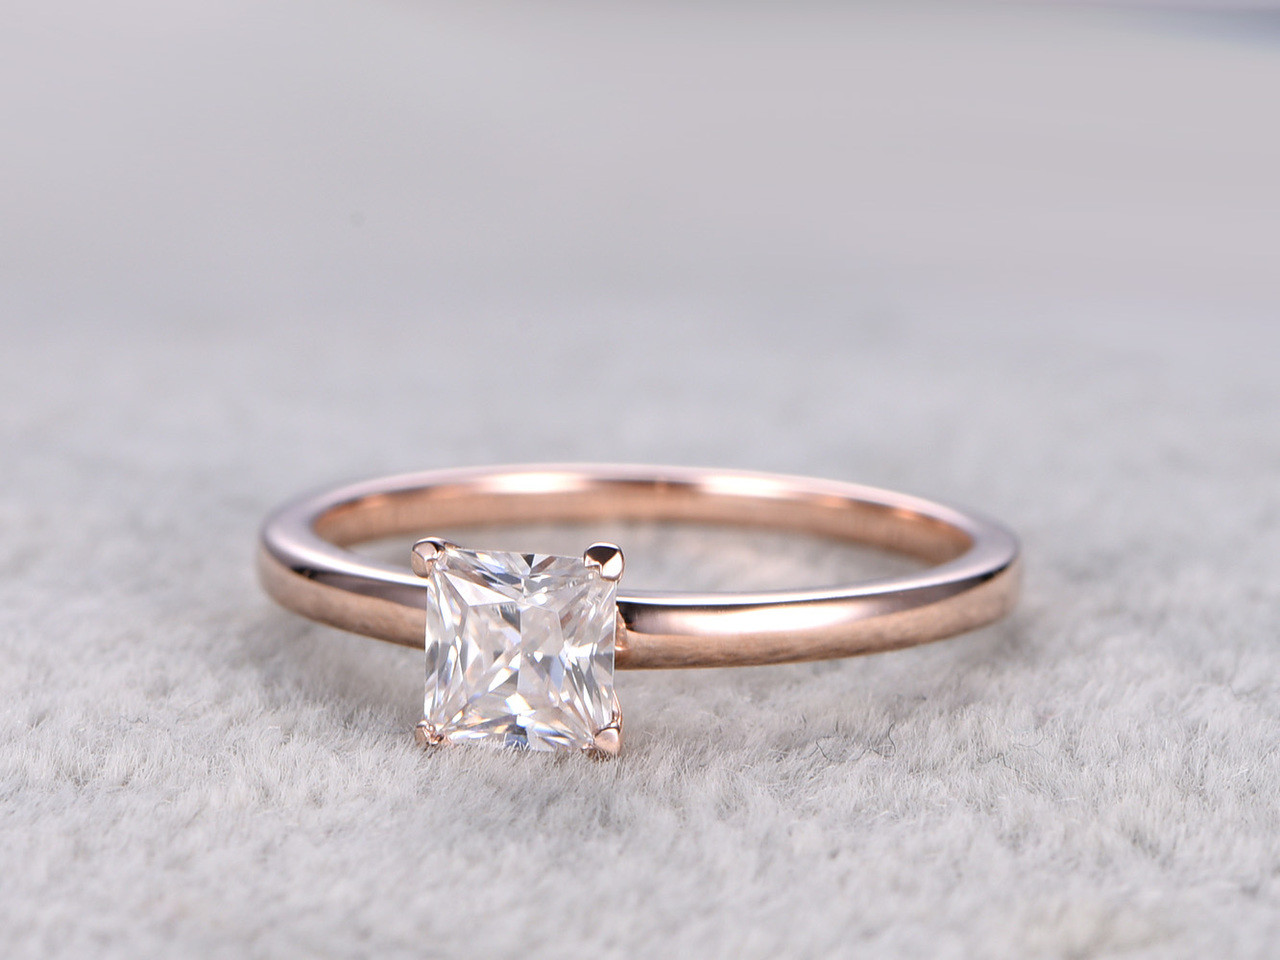 engagement rings bridal vintage gold women for her jewellery bands diamond